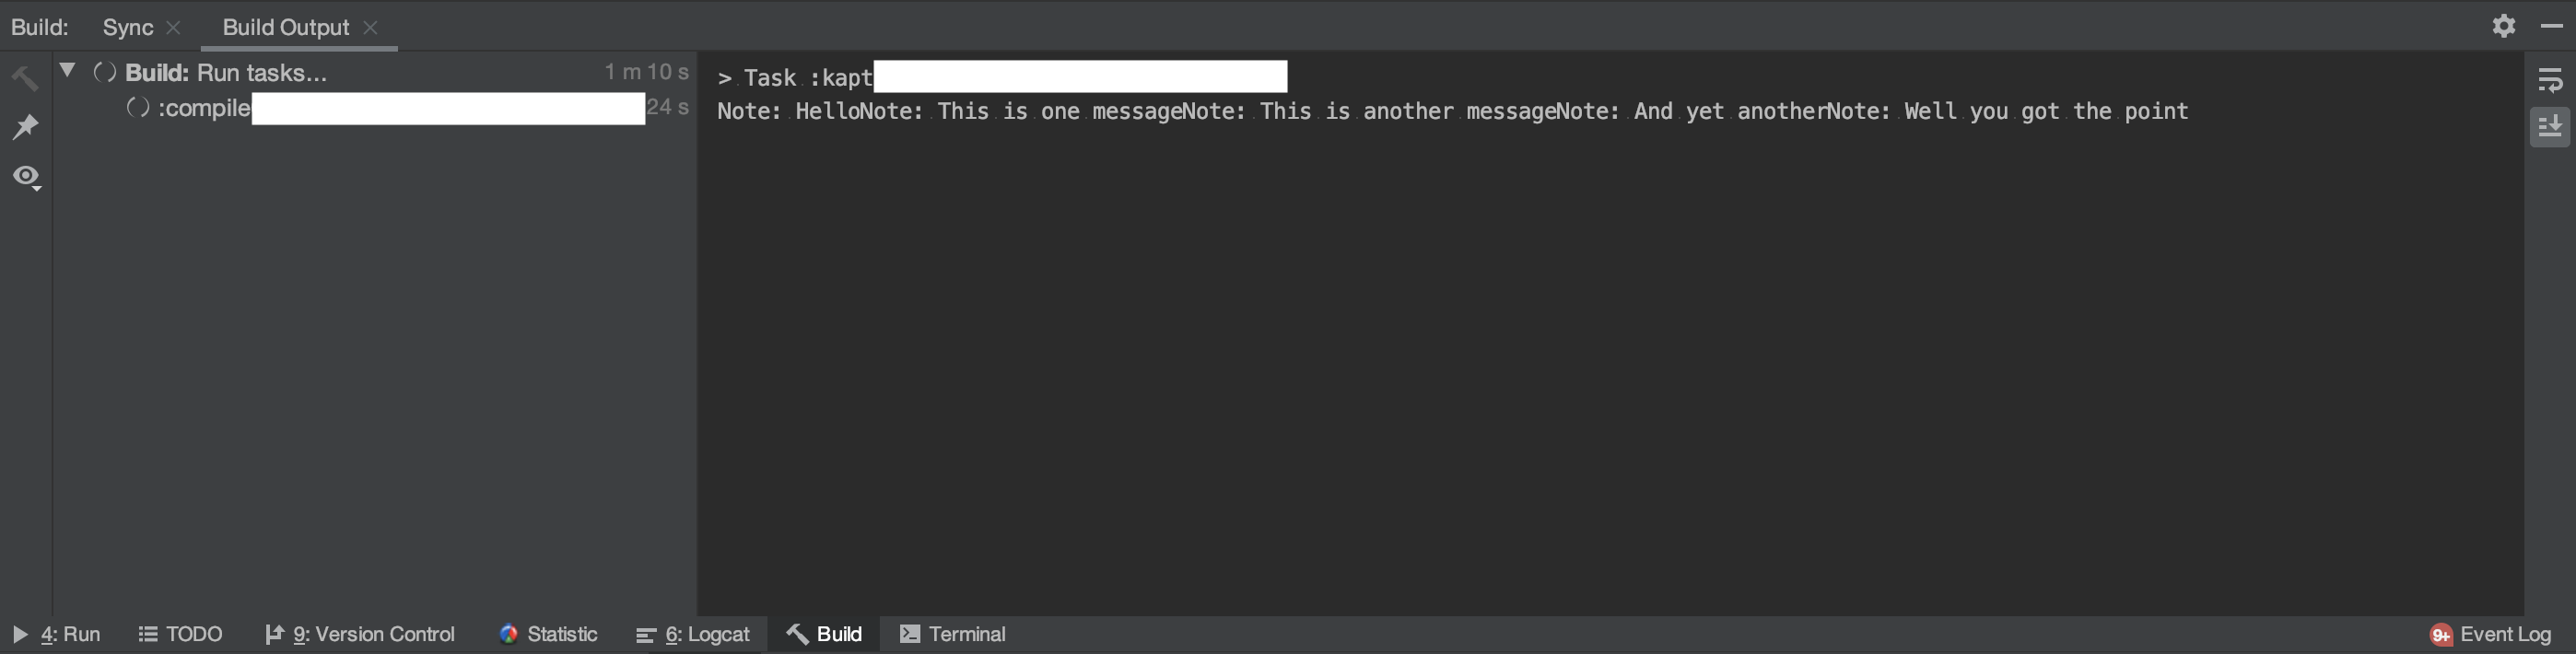 Build view on Android Studio (multiple printMessage() single lined)